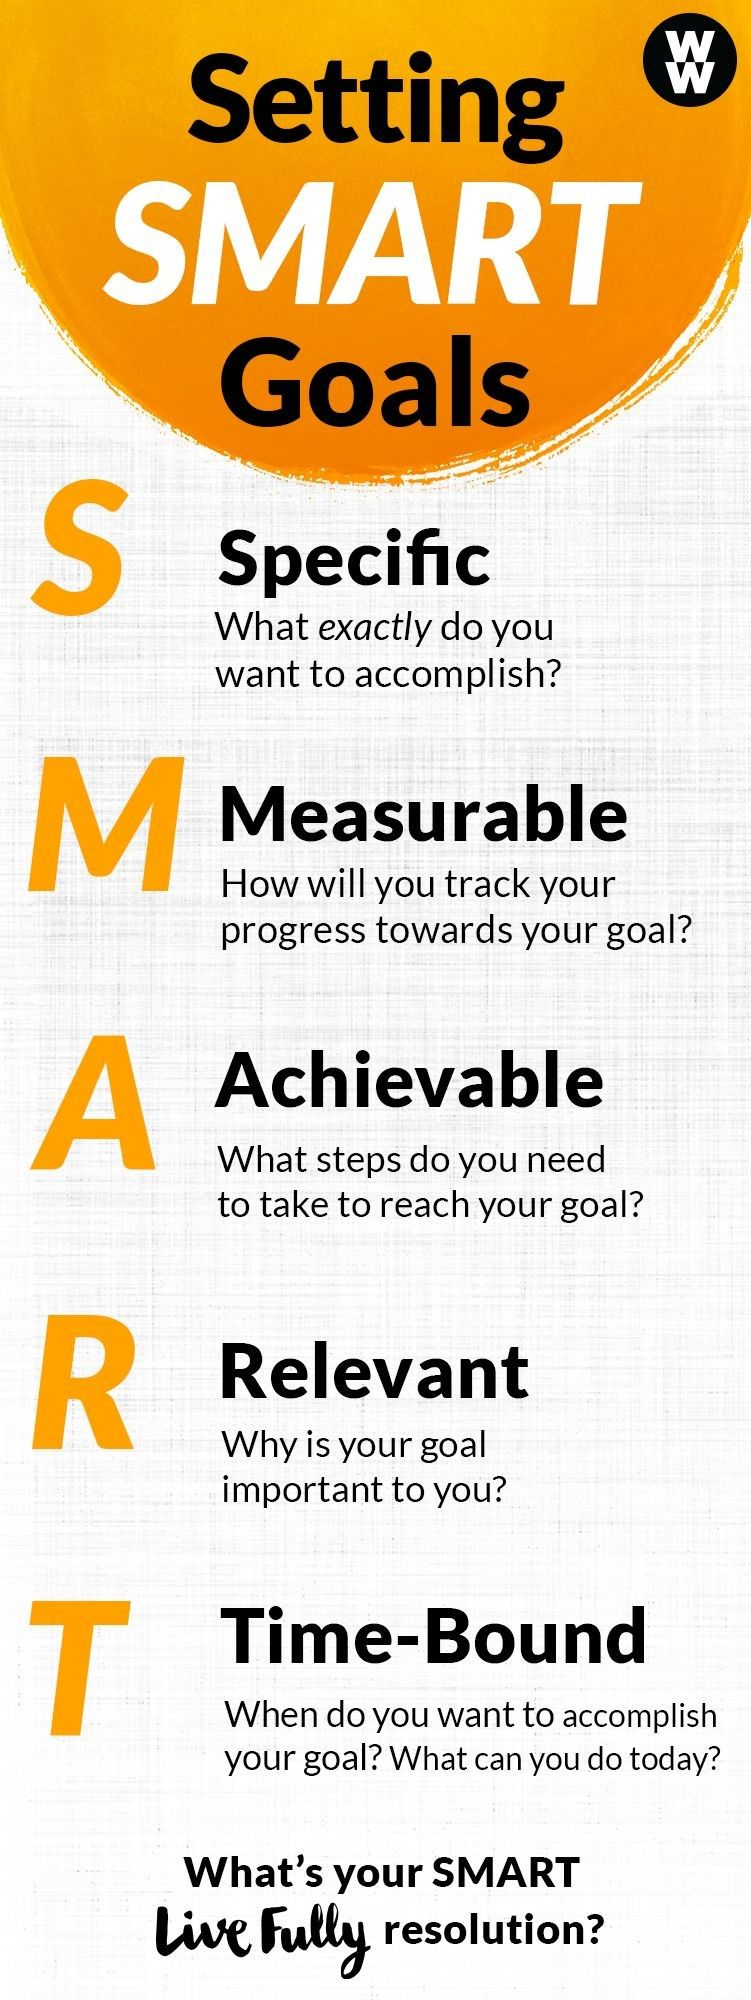 Pin by AMR_RAJPOOT on Life's lessons Smart goals, How to